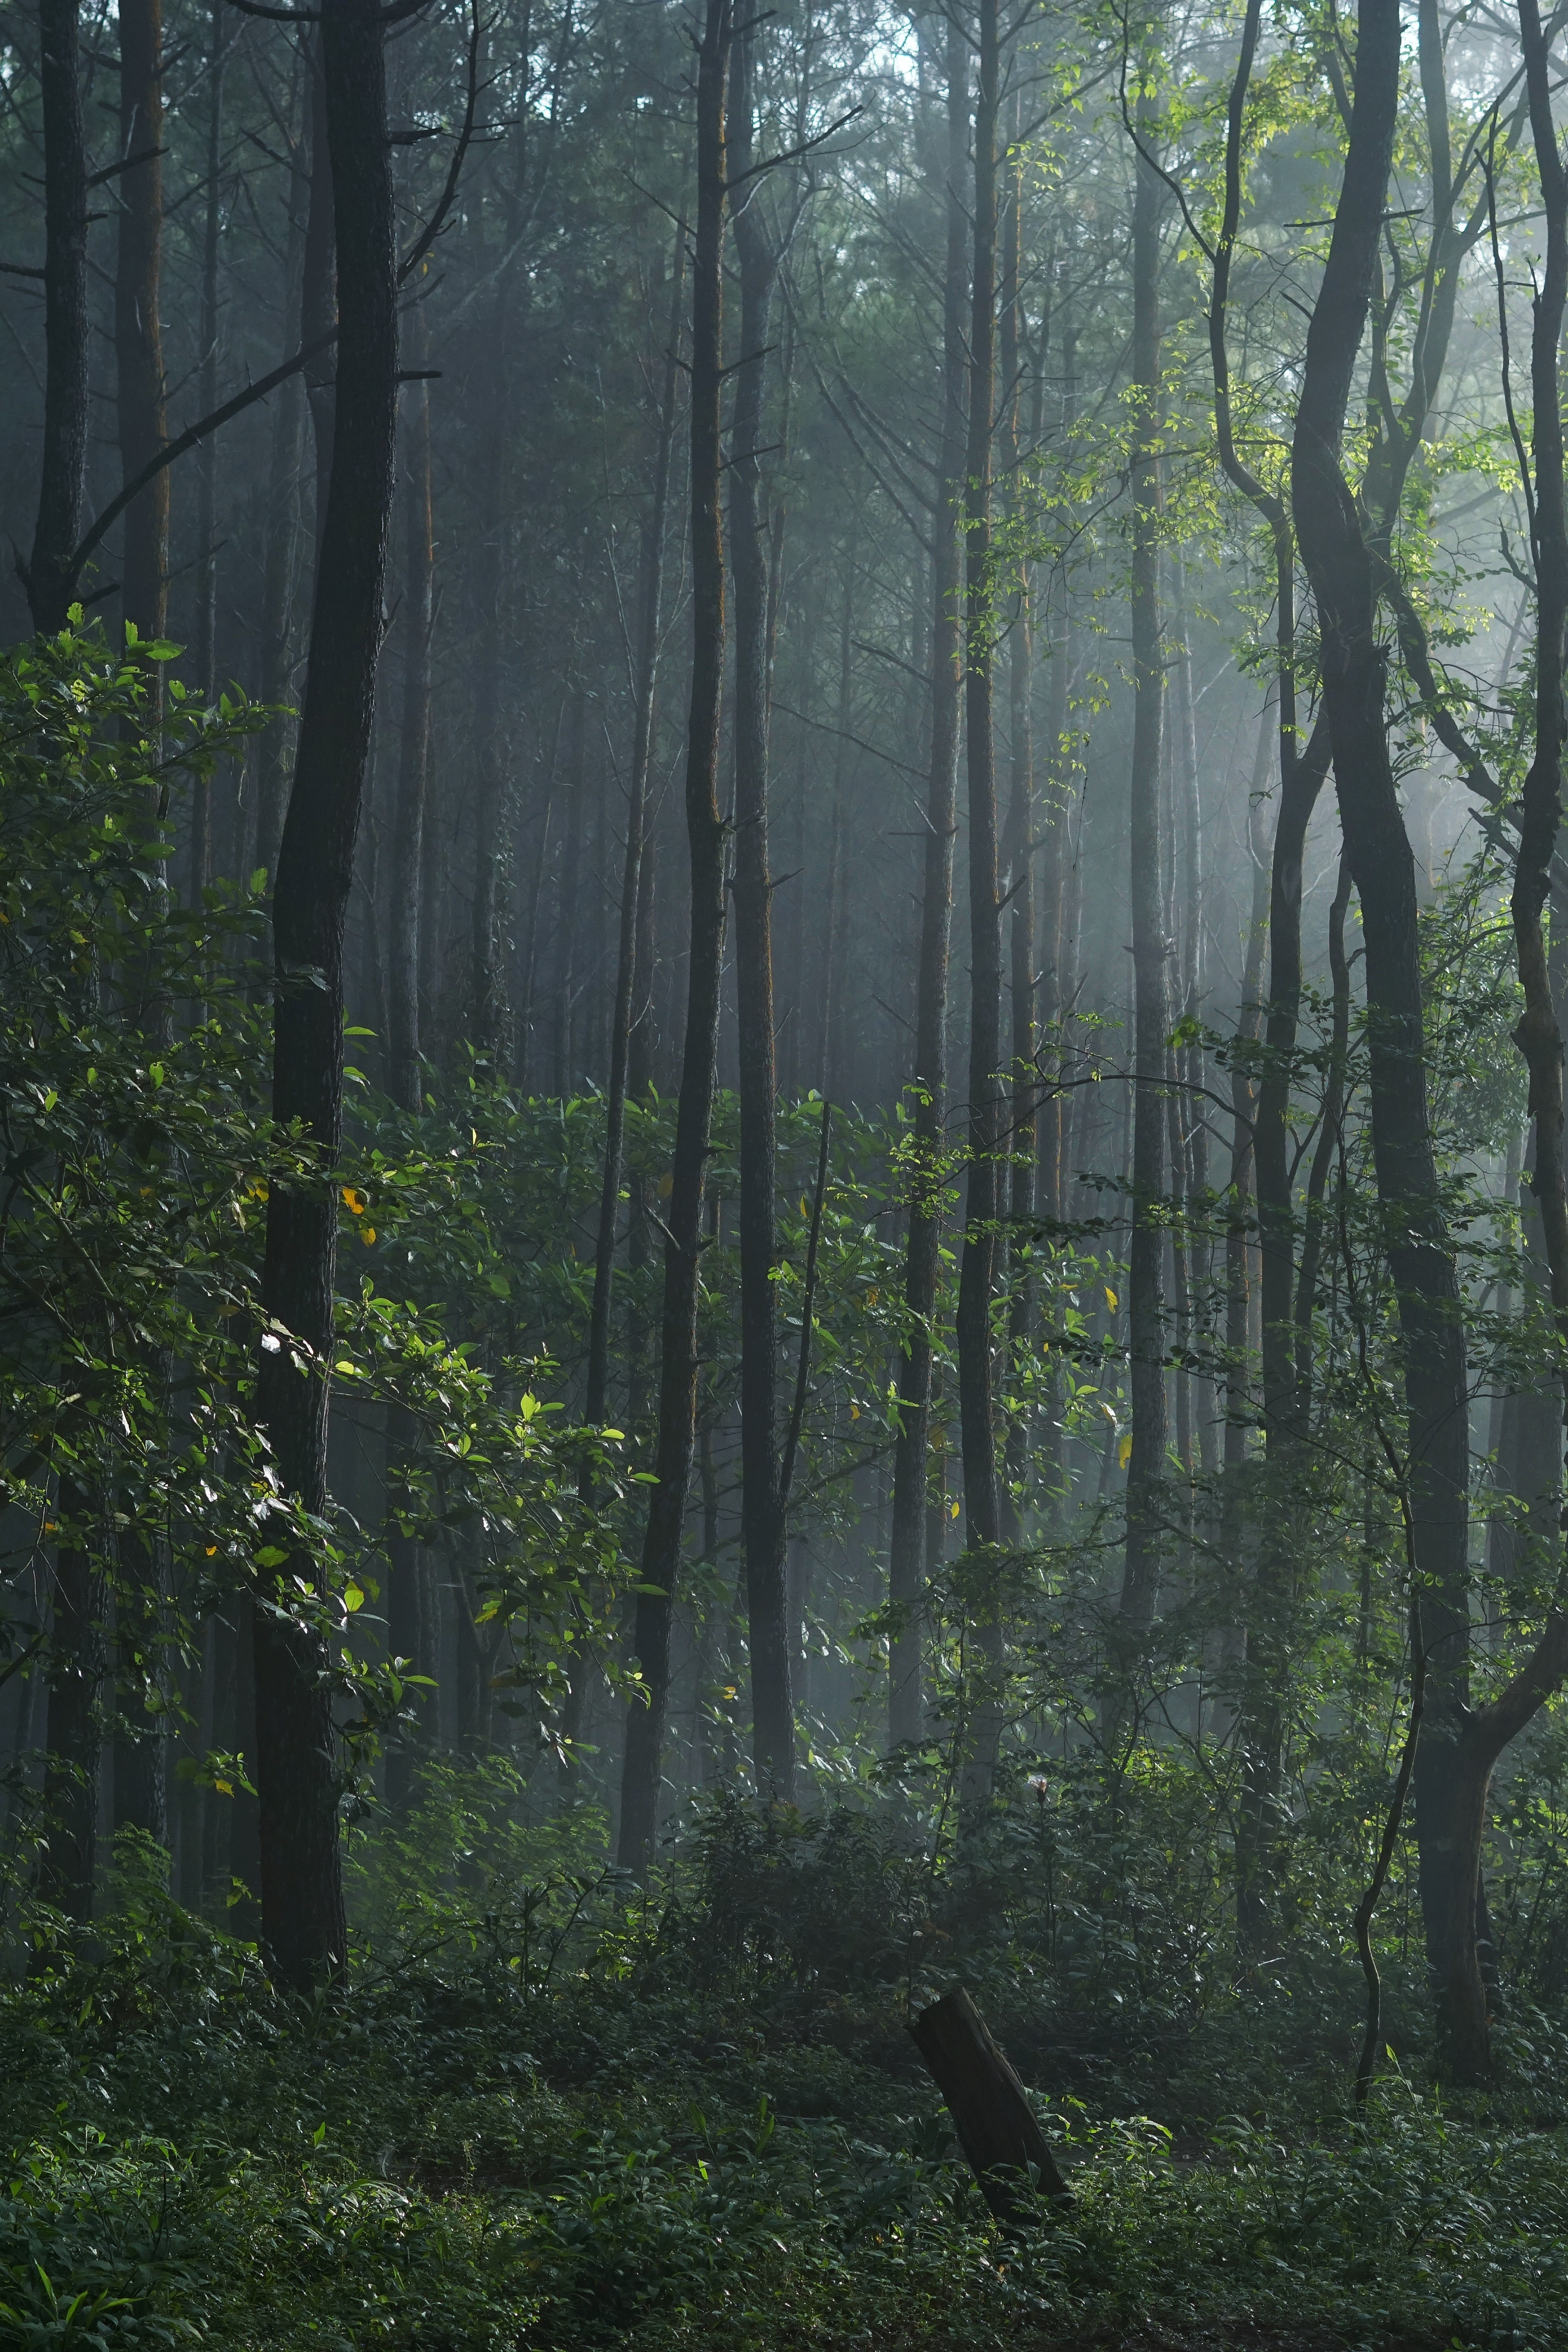 A small clearing in a lush forest